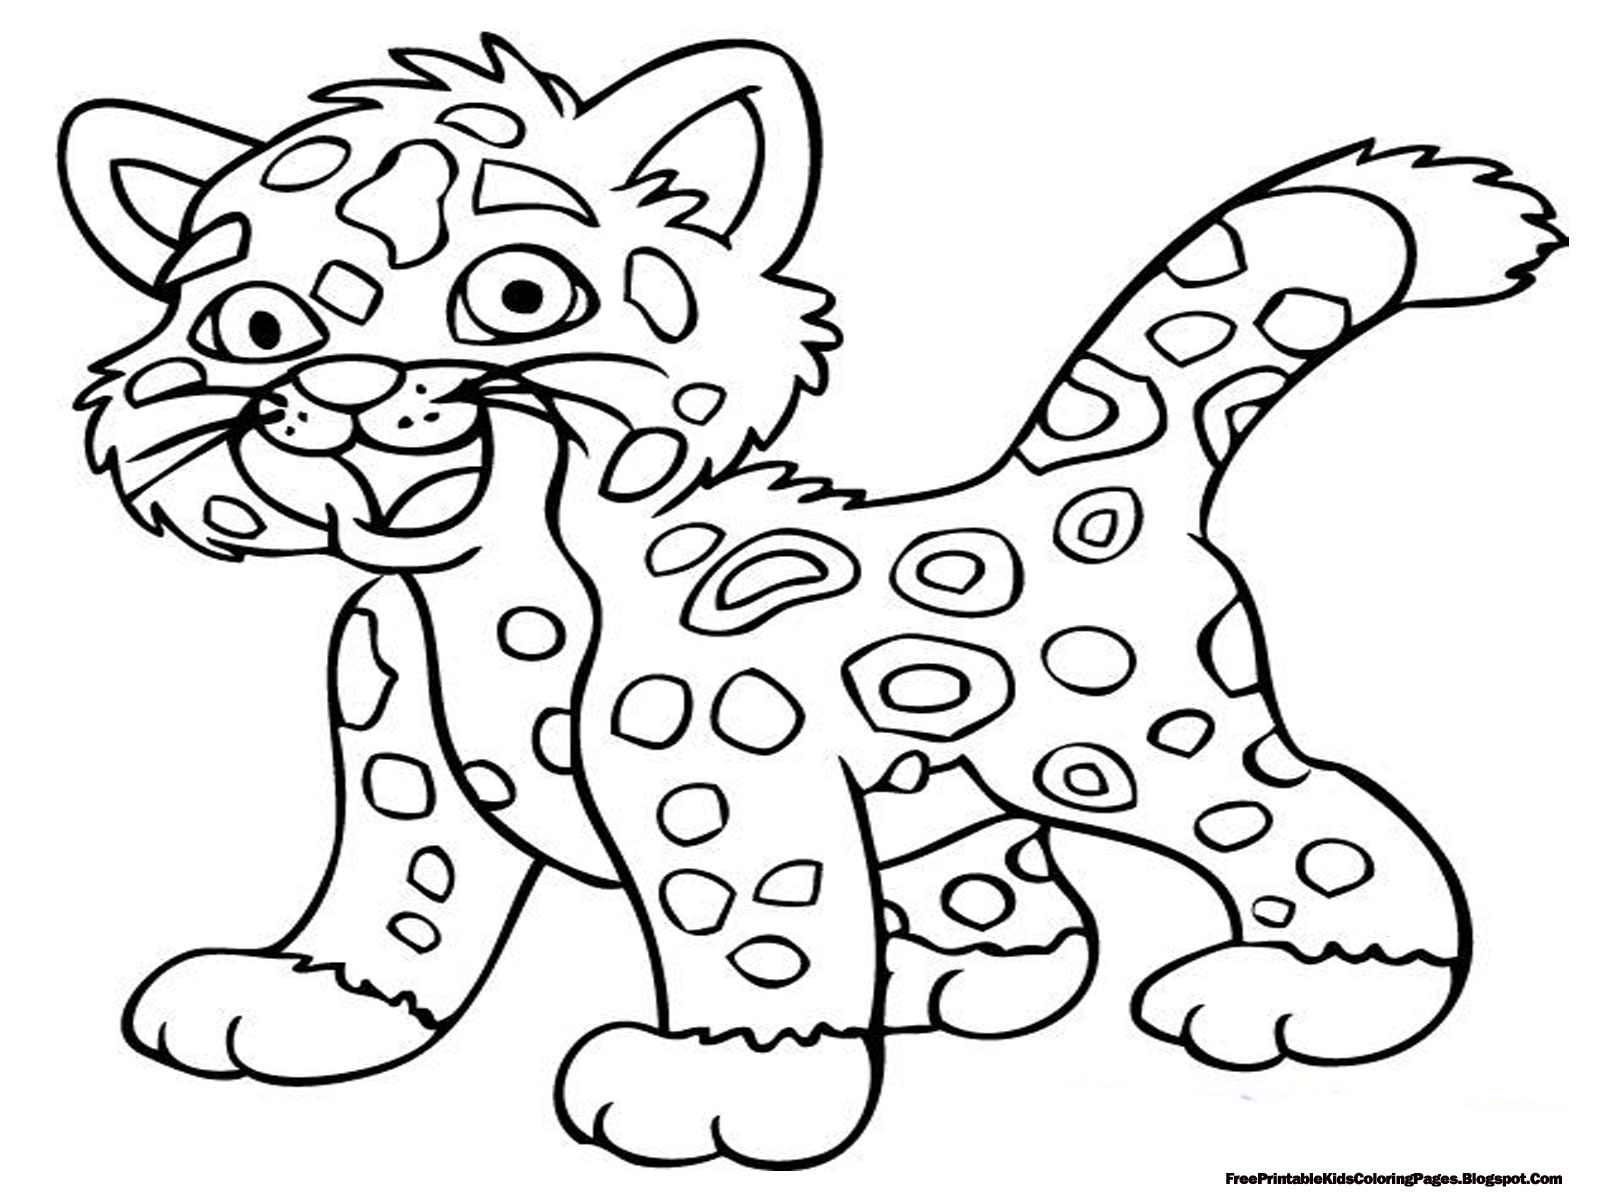 jaguar coloring pages free printable kids coloring pages. Black Bedroom Furniture Sets. Home Design Ideas